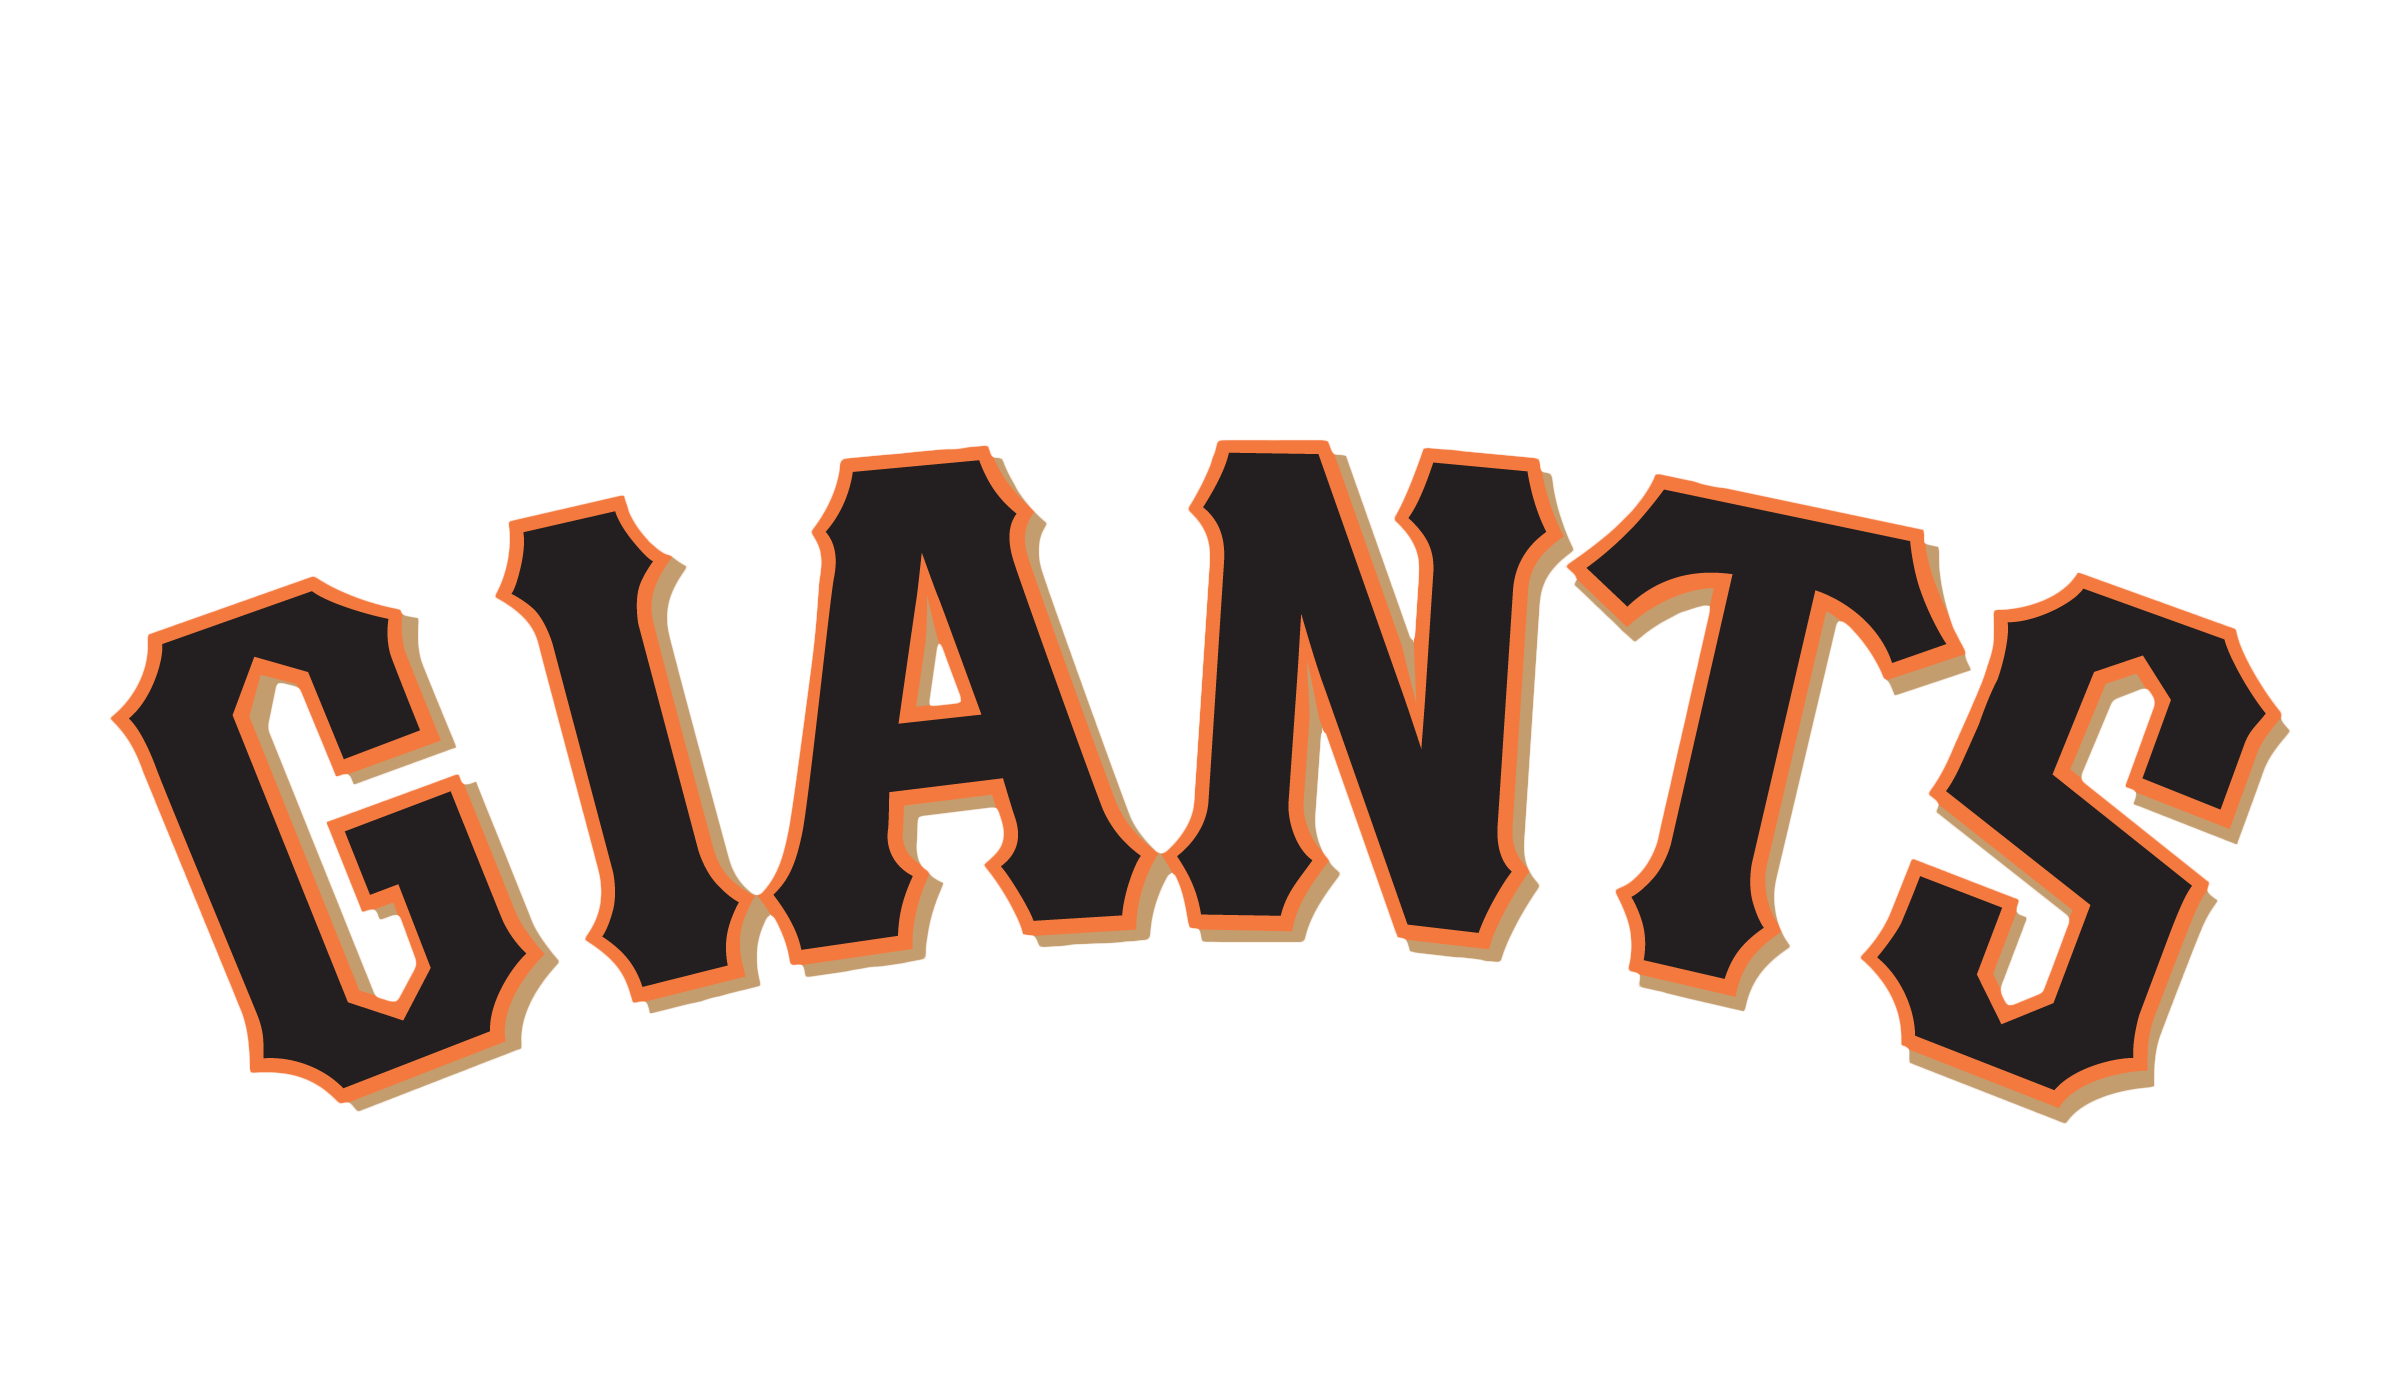 san francisco giants logo png transparent svg vector freebie supply rh freebiesupply com san francisco giants logo font free